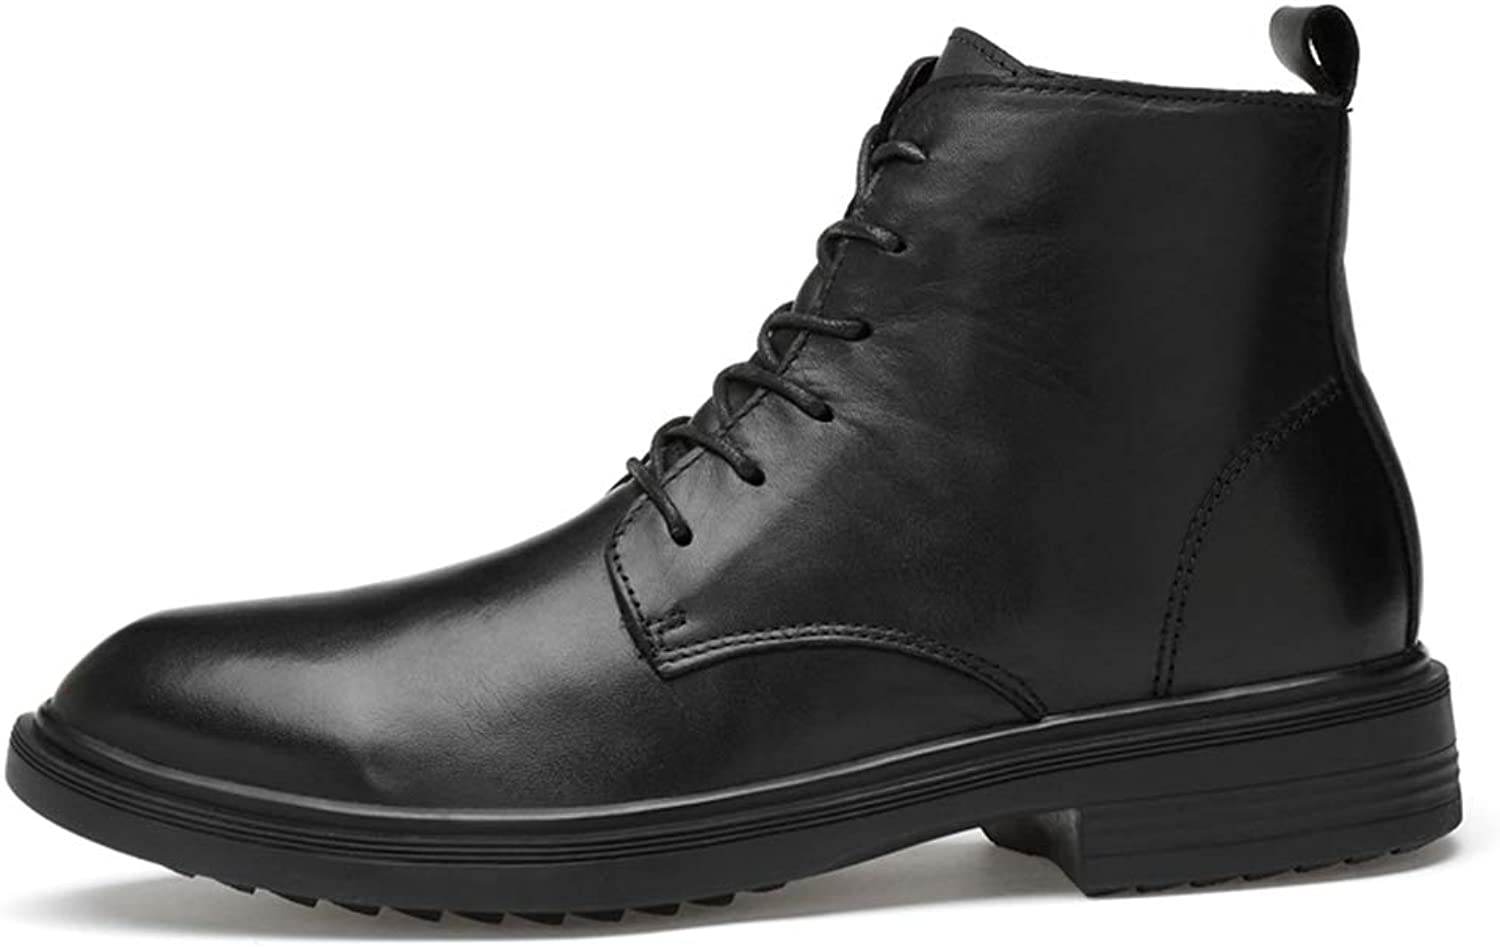 Men's Leather Boots Fall & Winter Tooling Warm Boots Knight Boots Lace Up Martin shoes High-Top Casual Leather shoes Black,A,40